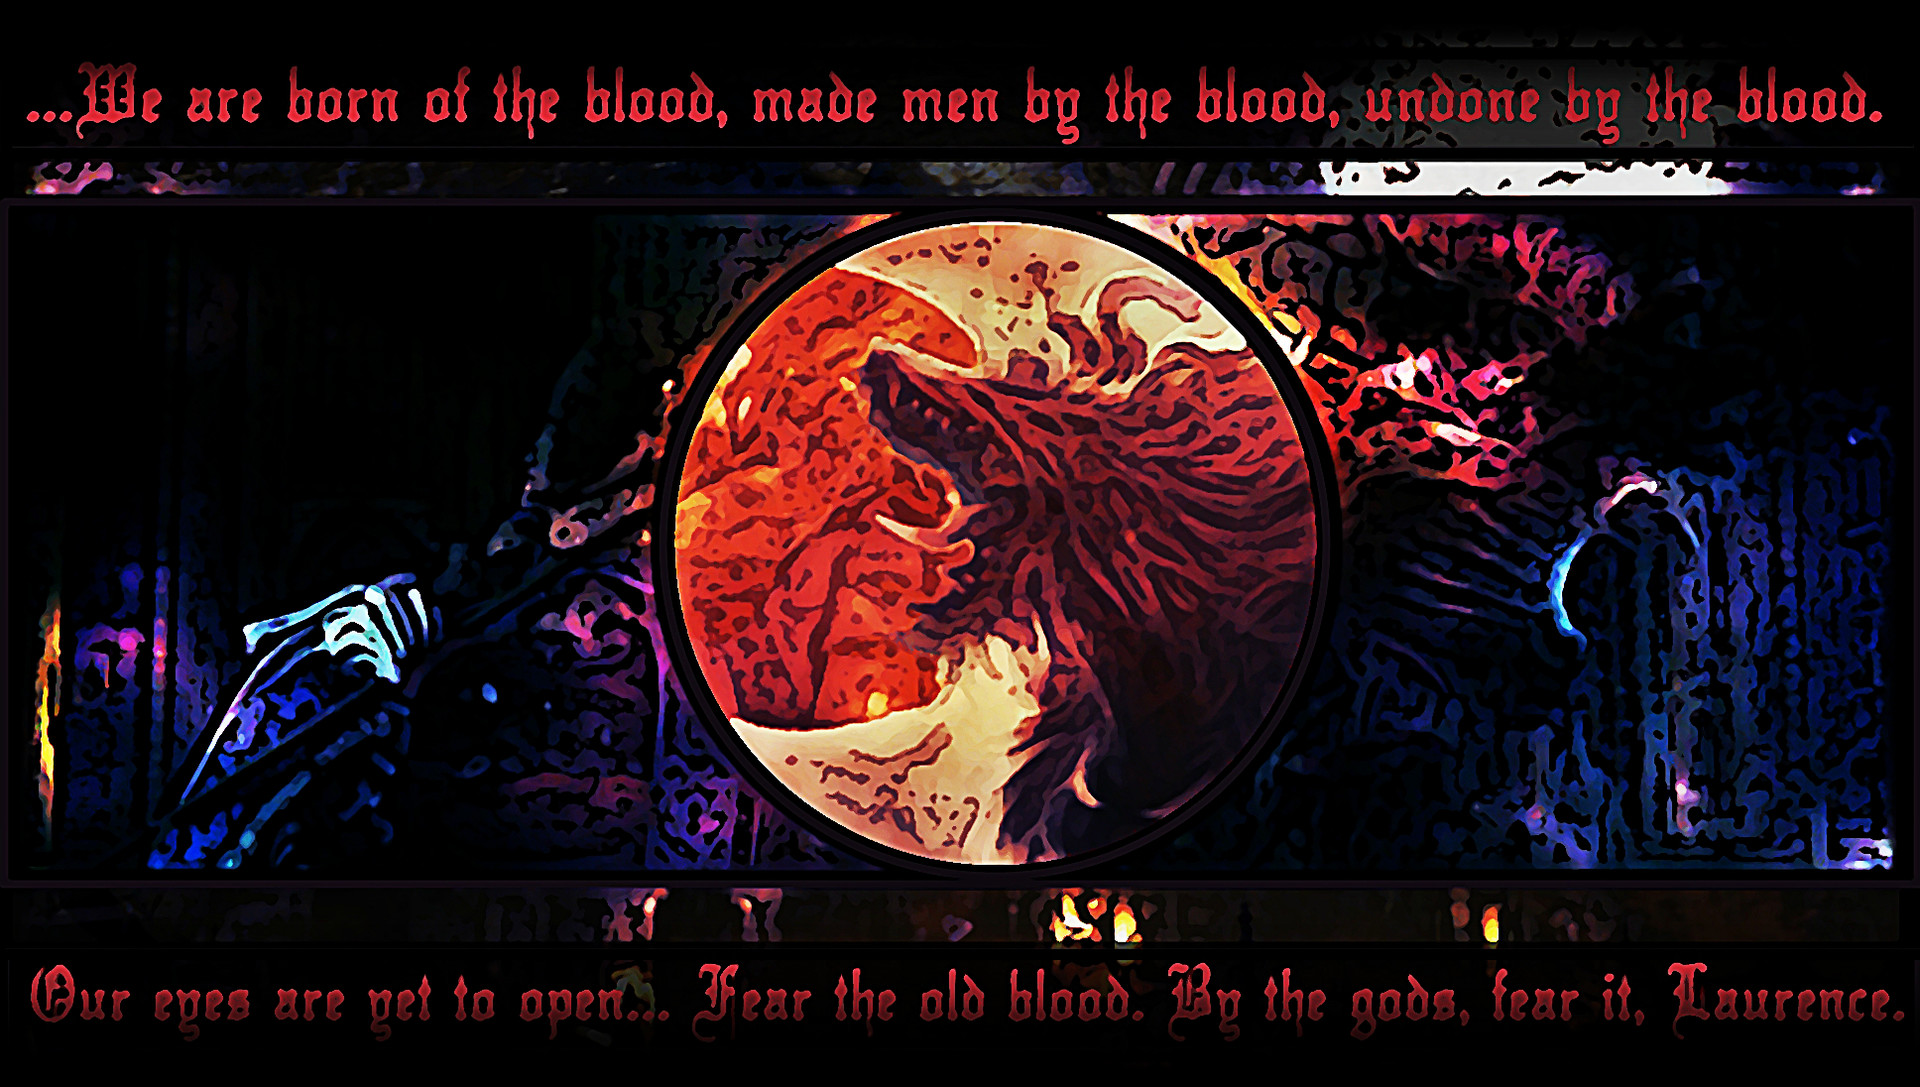 Pavel Shipilin Bloodborne Wallpaper Fear The Old Blood